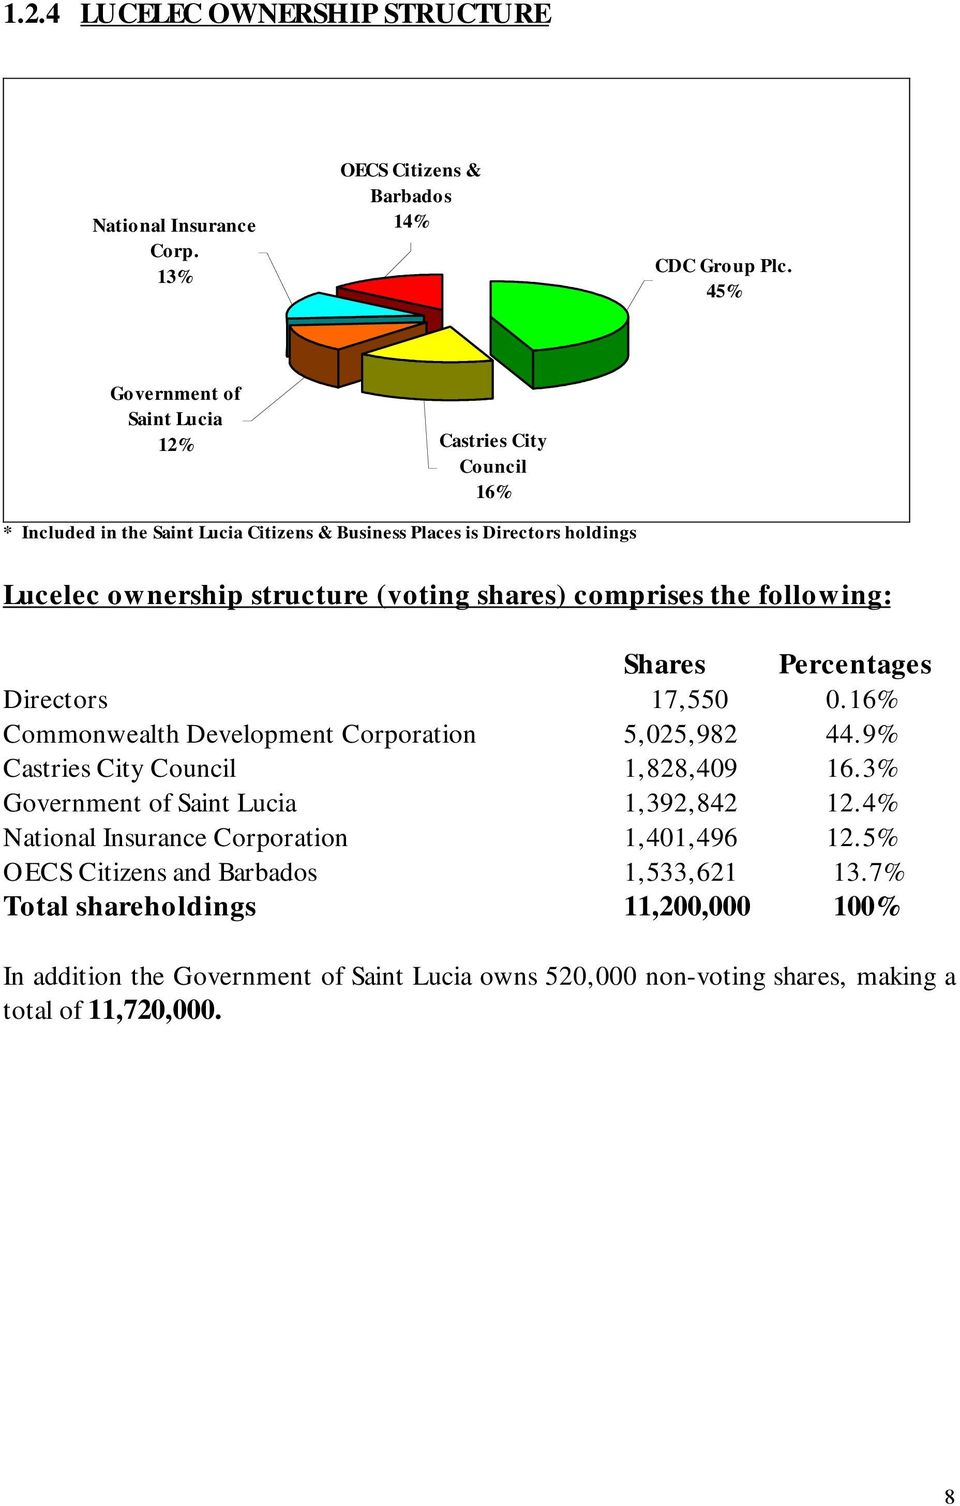 shares) comprises the following: Shares Percentages Directors 17,550 0.16% Commonwealth Development Corporation 5,025,982 44.9% Castries City Council 1,828,409 16.